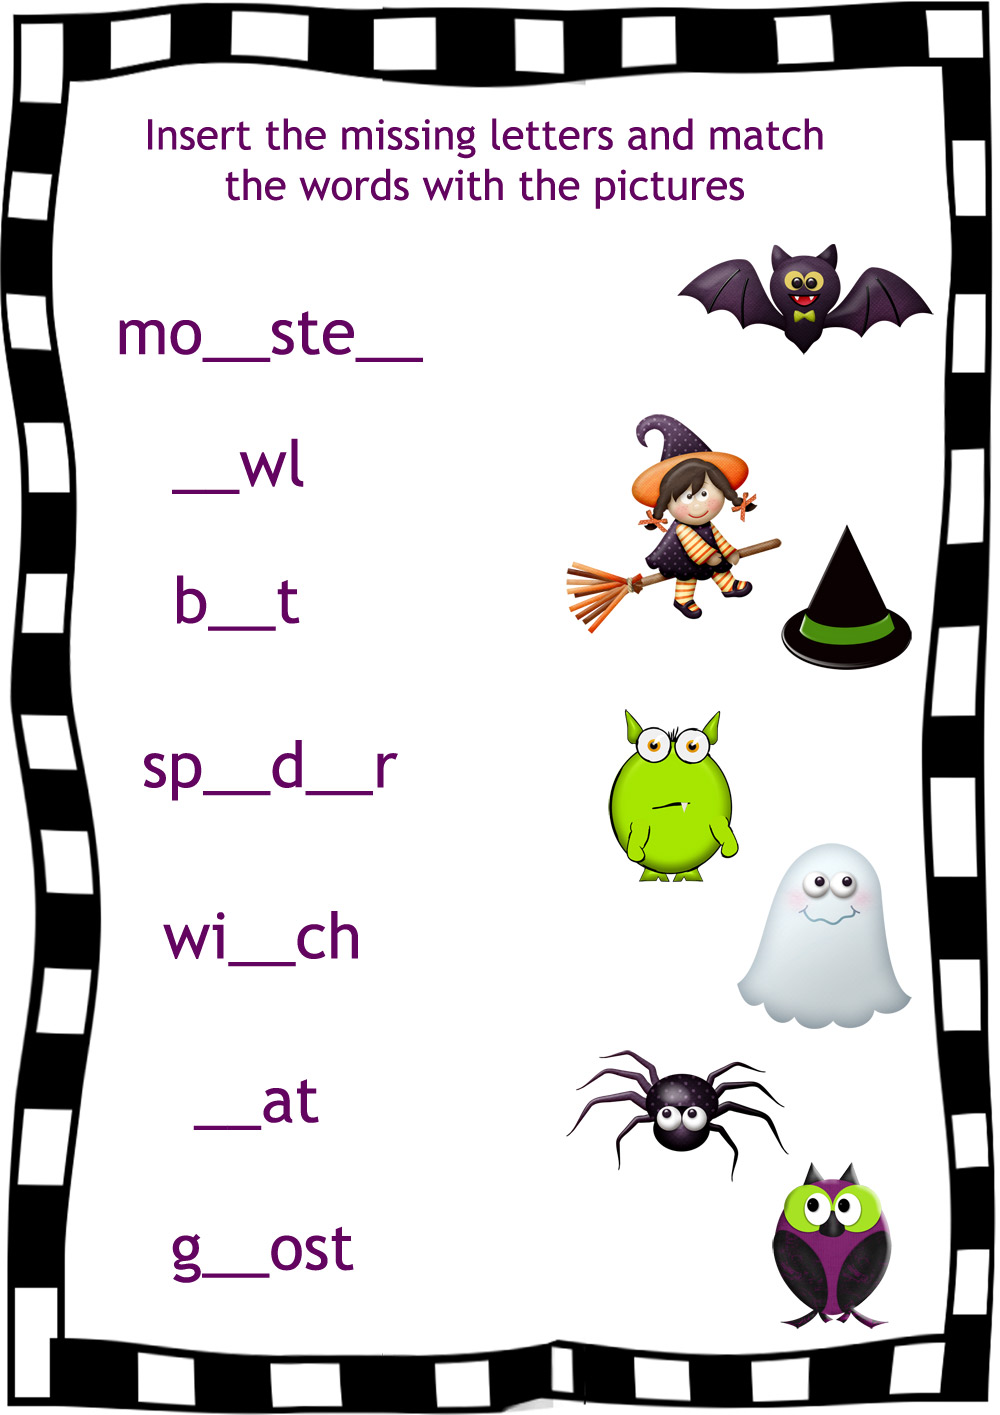 Fun halloween worksheets for 3rd grade Halloween Worksheets – Fun Halloween Worksheets